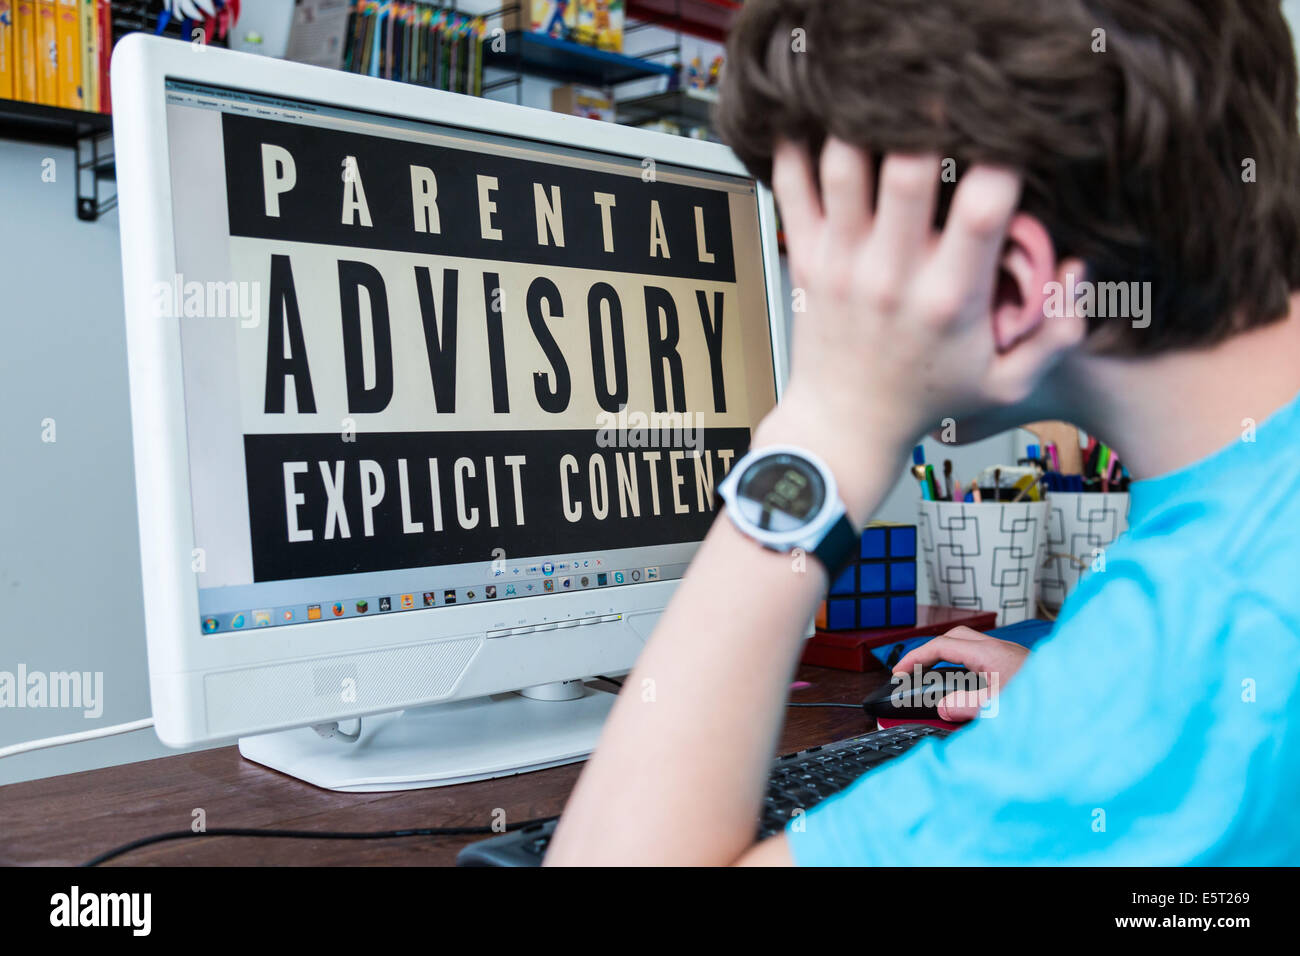 Teenage boy using a computer with a parental control software. - Stock Image